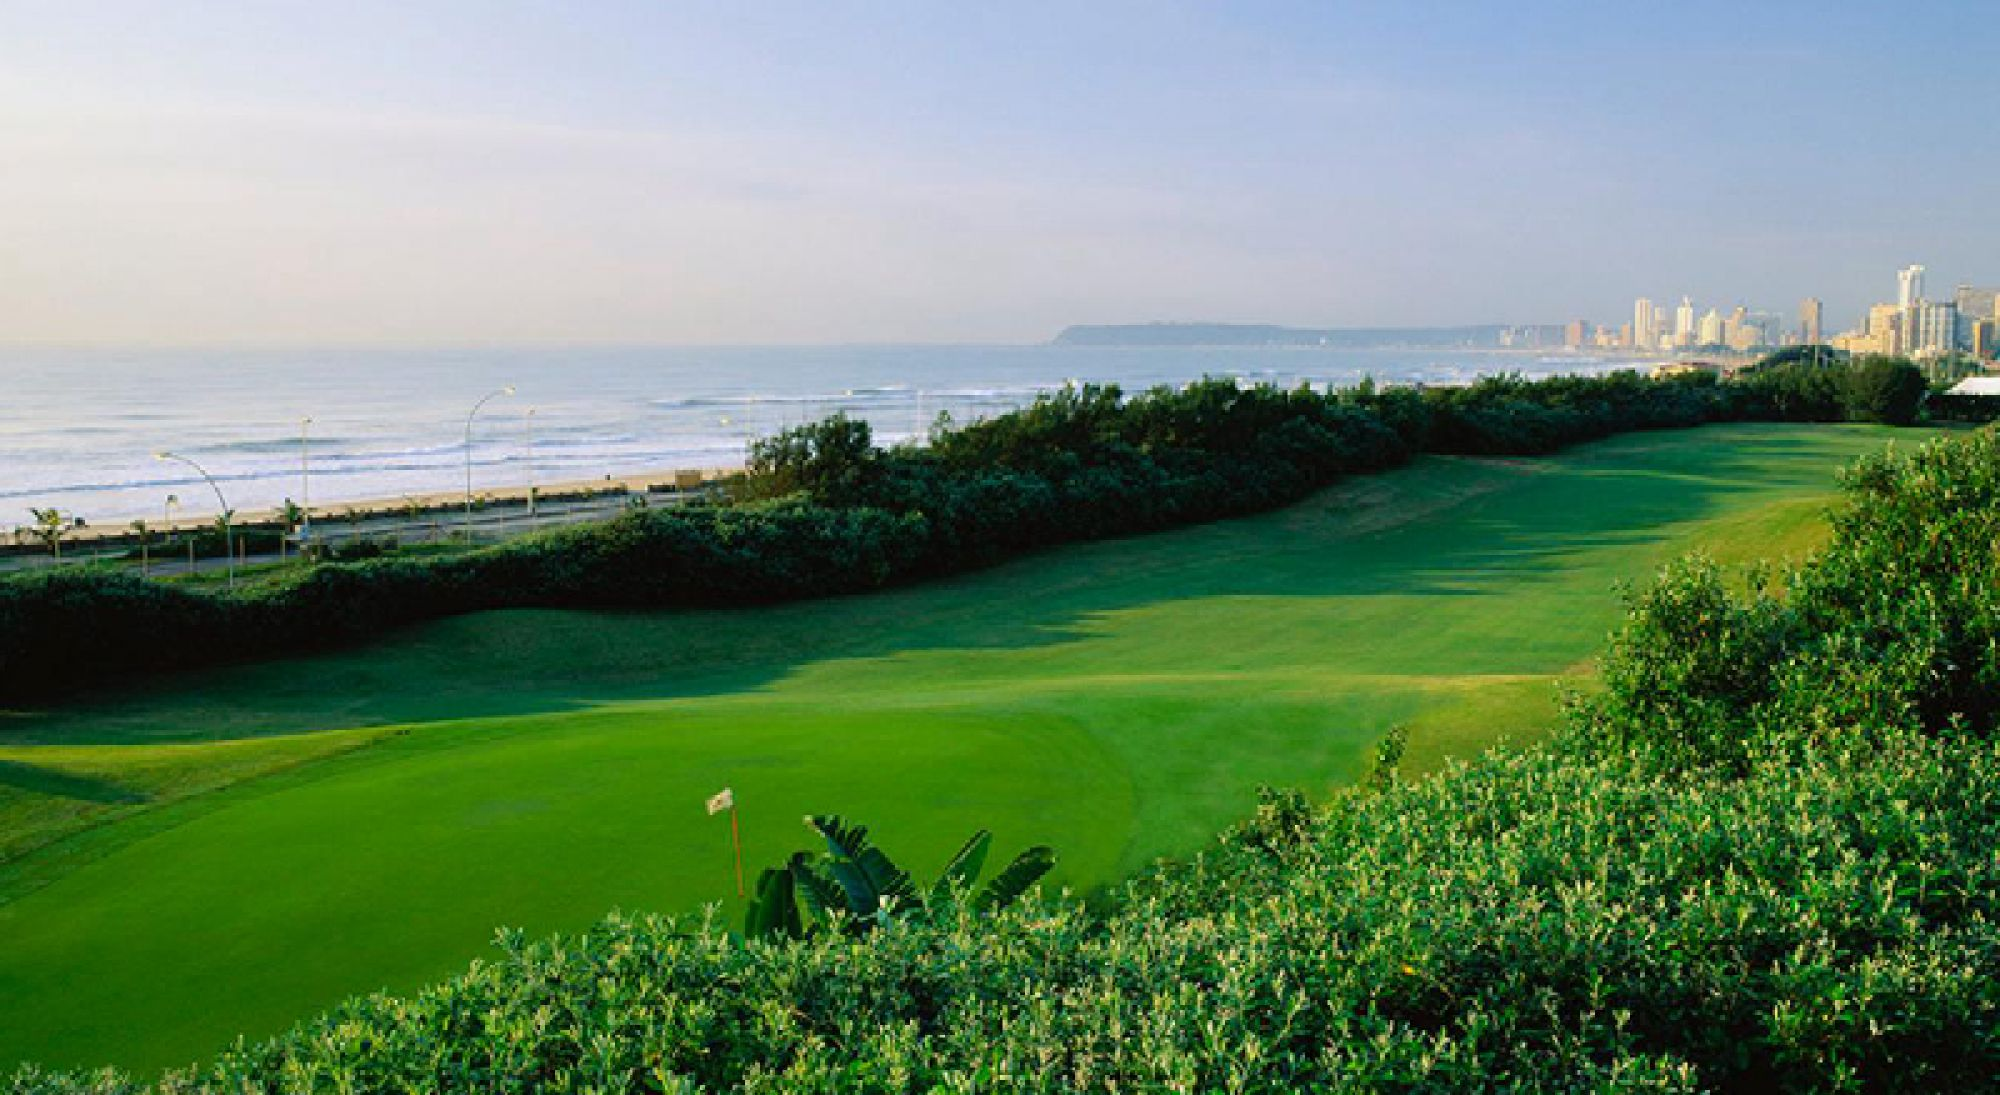 Durban Country Club consists of several of the most popular golf course in South Africa